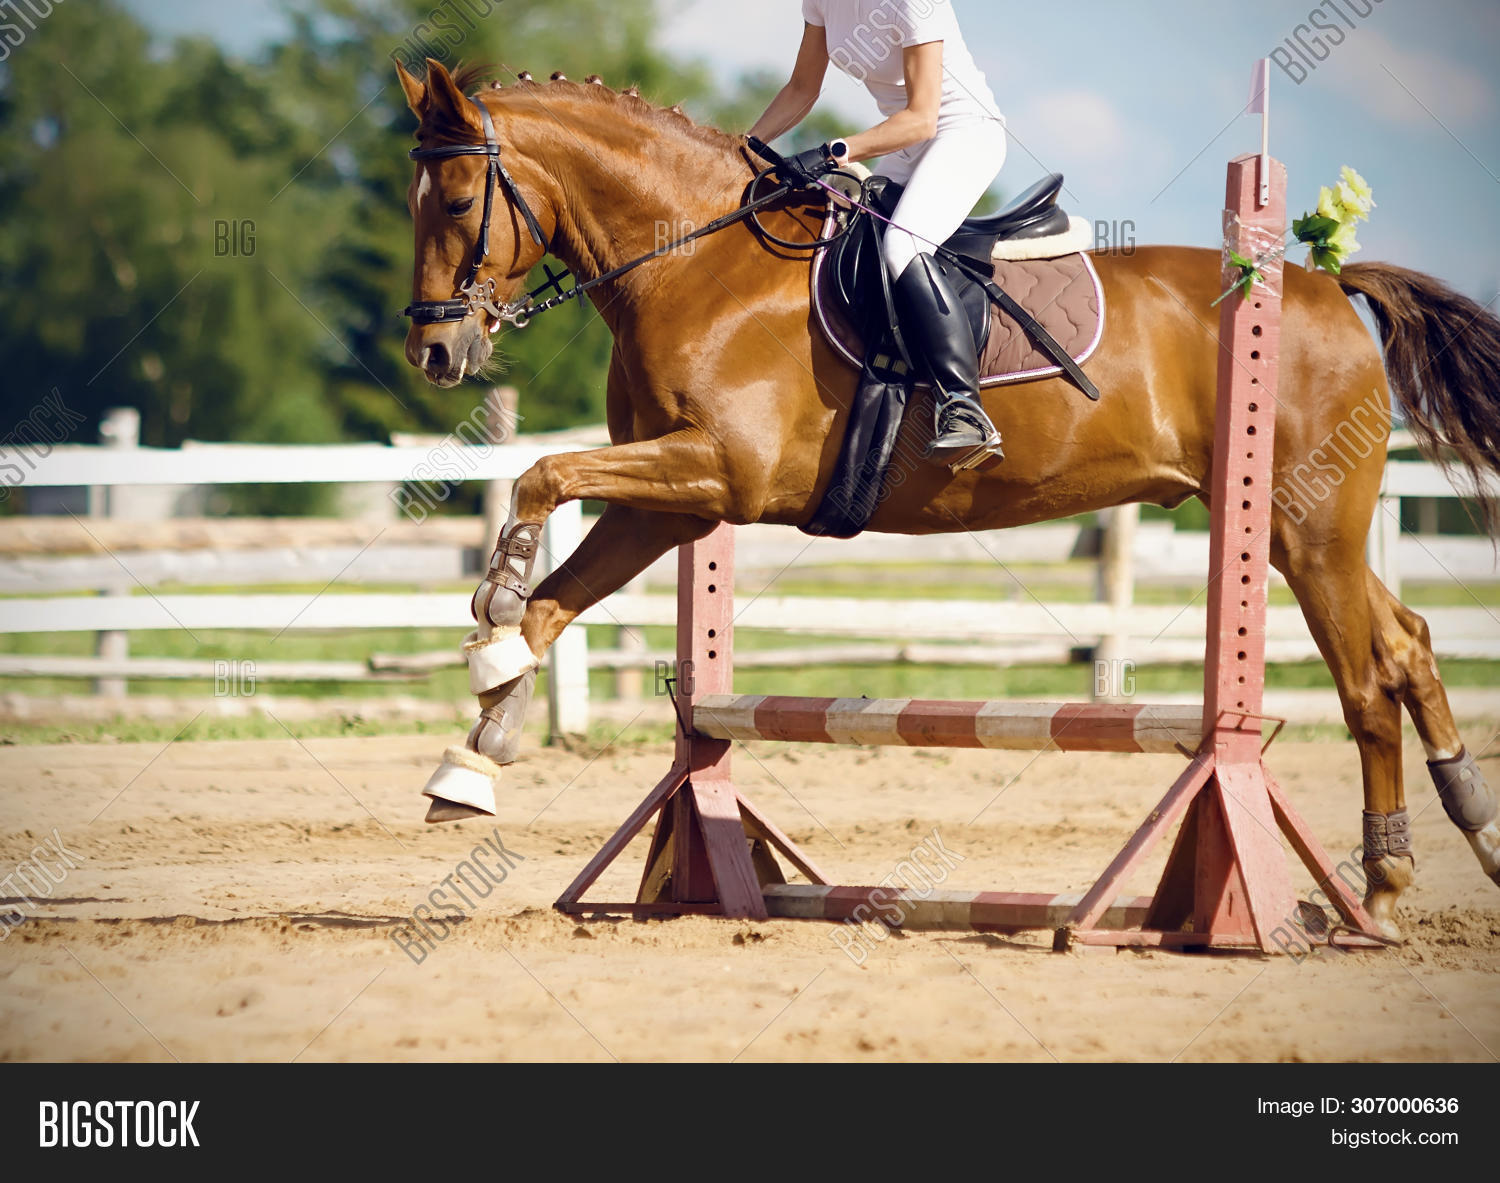 Chestnut Horse Rider Image Photo Free Trial Bigstock